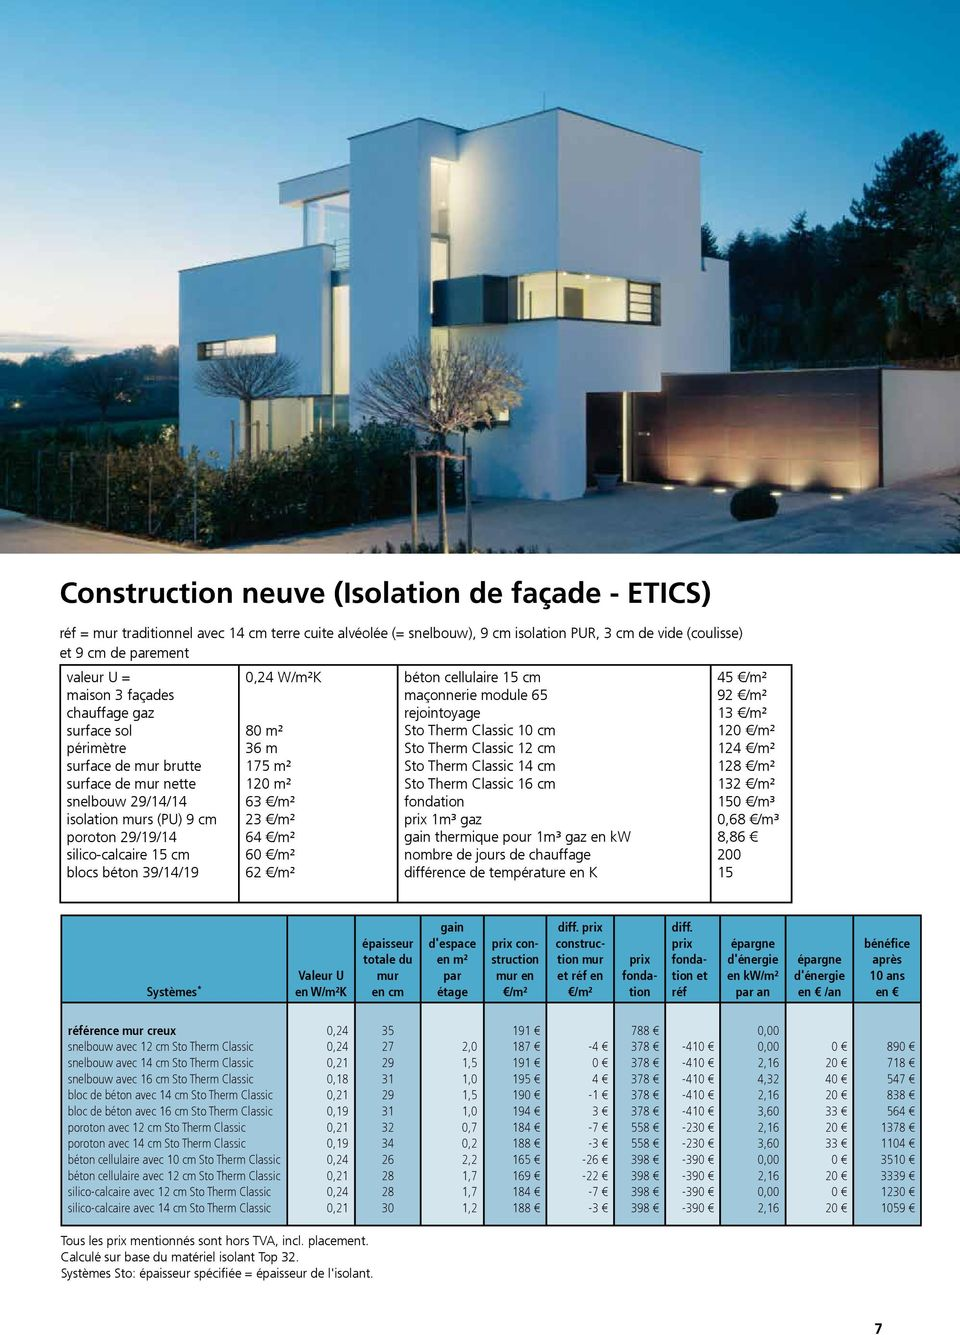 W/m²K 80 m² 36 m 175 m² 120 m² 63 /m² 23 /m² 64 /m² 60 /m² 62 /m² béton cellulaire 15 cm maçonnerie module 65 rejointoyage Sto Therm Classic 10 cm Sto Therm Classic 12 cm Sto Therm Classic 14 cm Sto